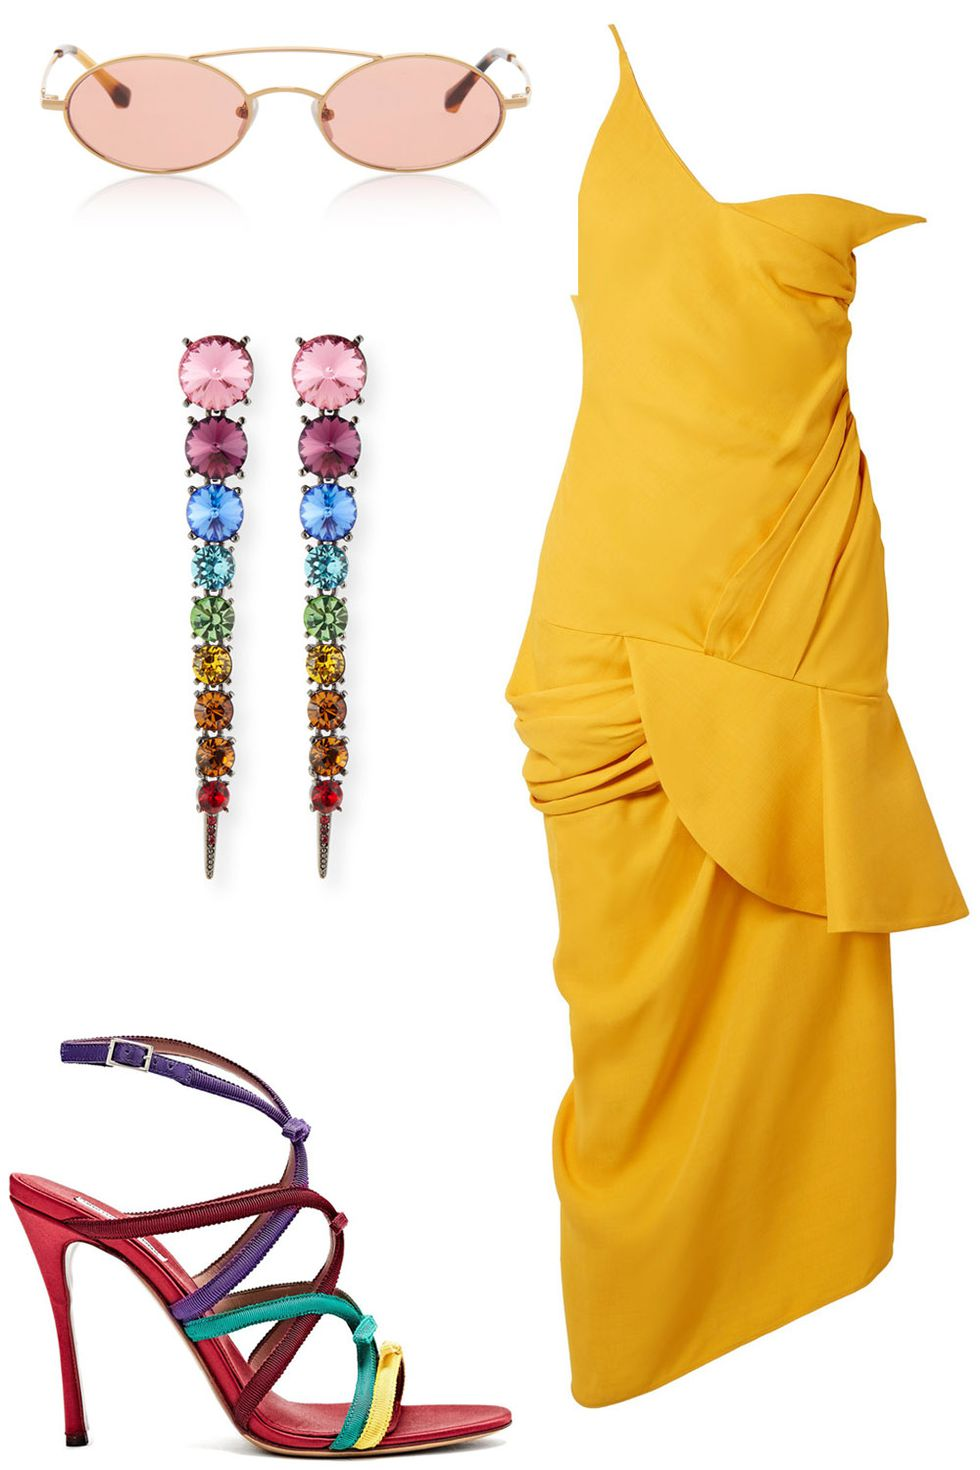 what-to-wear-for-a-summer-wedding-guest-outfit-yellow-dress-slip-earrings-rainbow-sun-red-shoe-sandalh-dinner.jpg